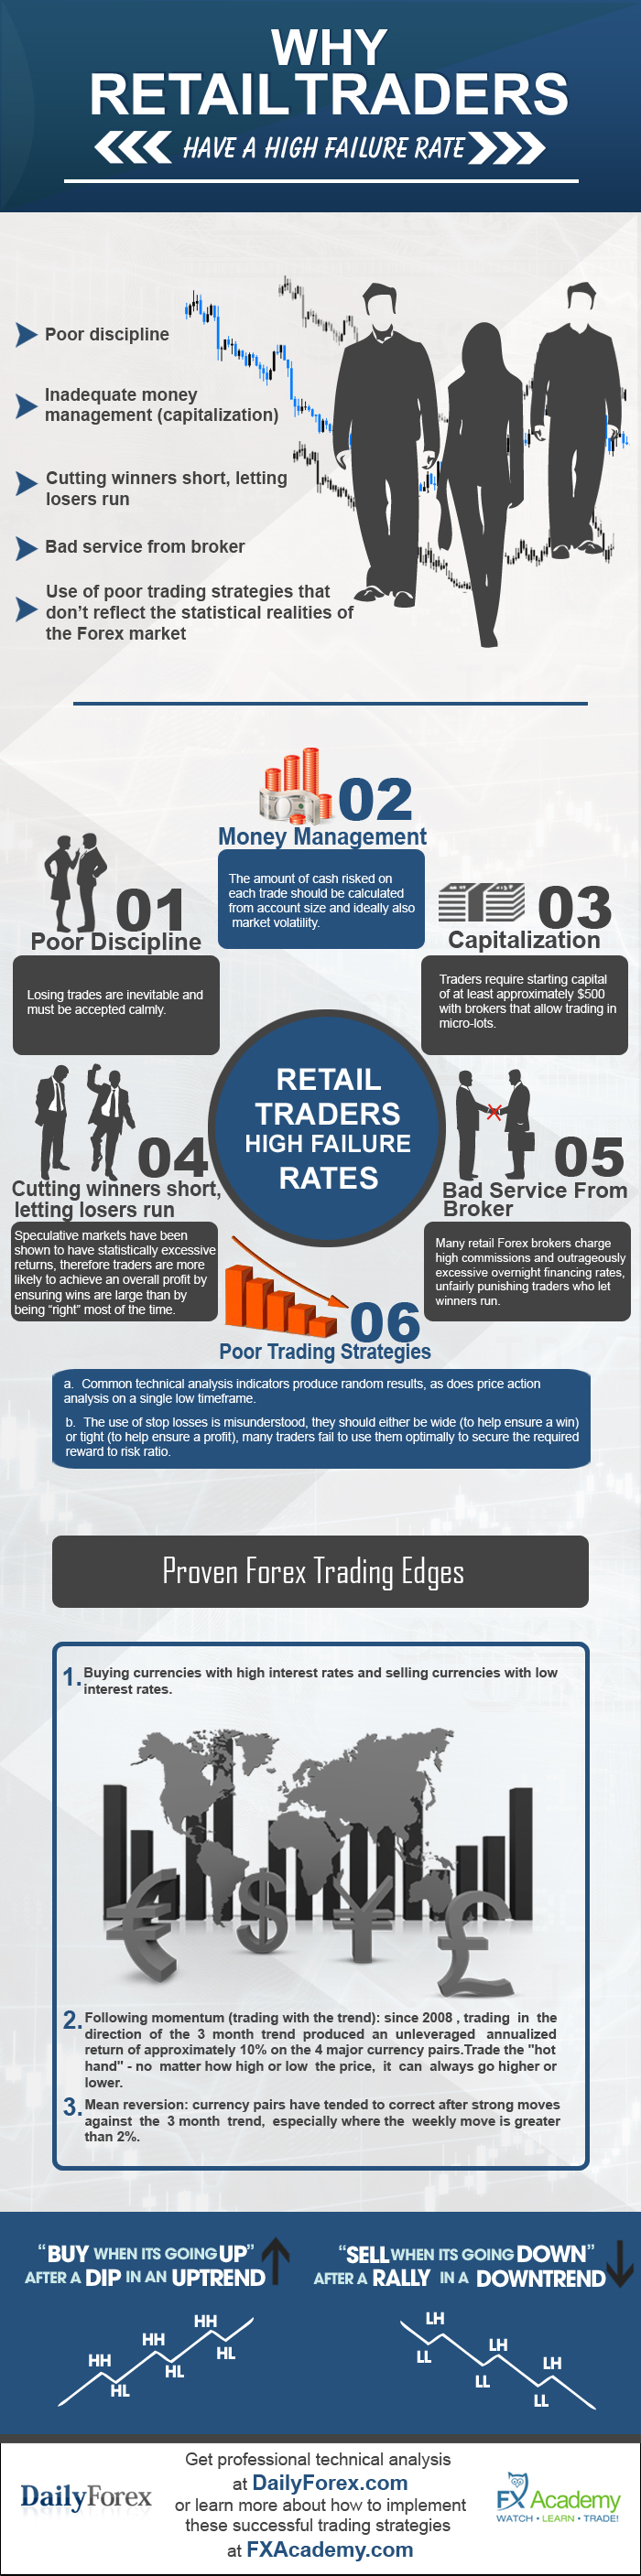 Why Retail Traders Fail (DailyForex.com)